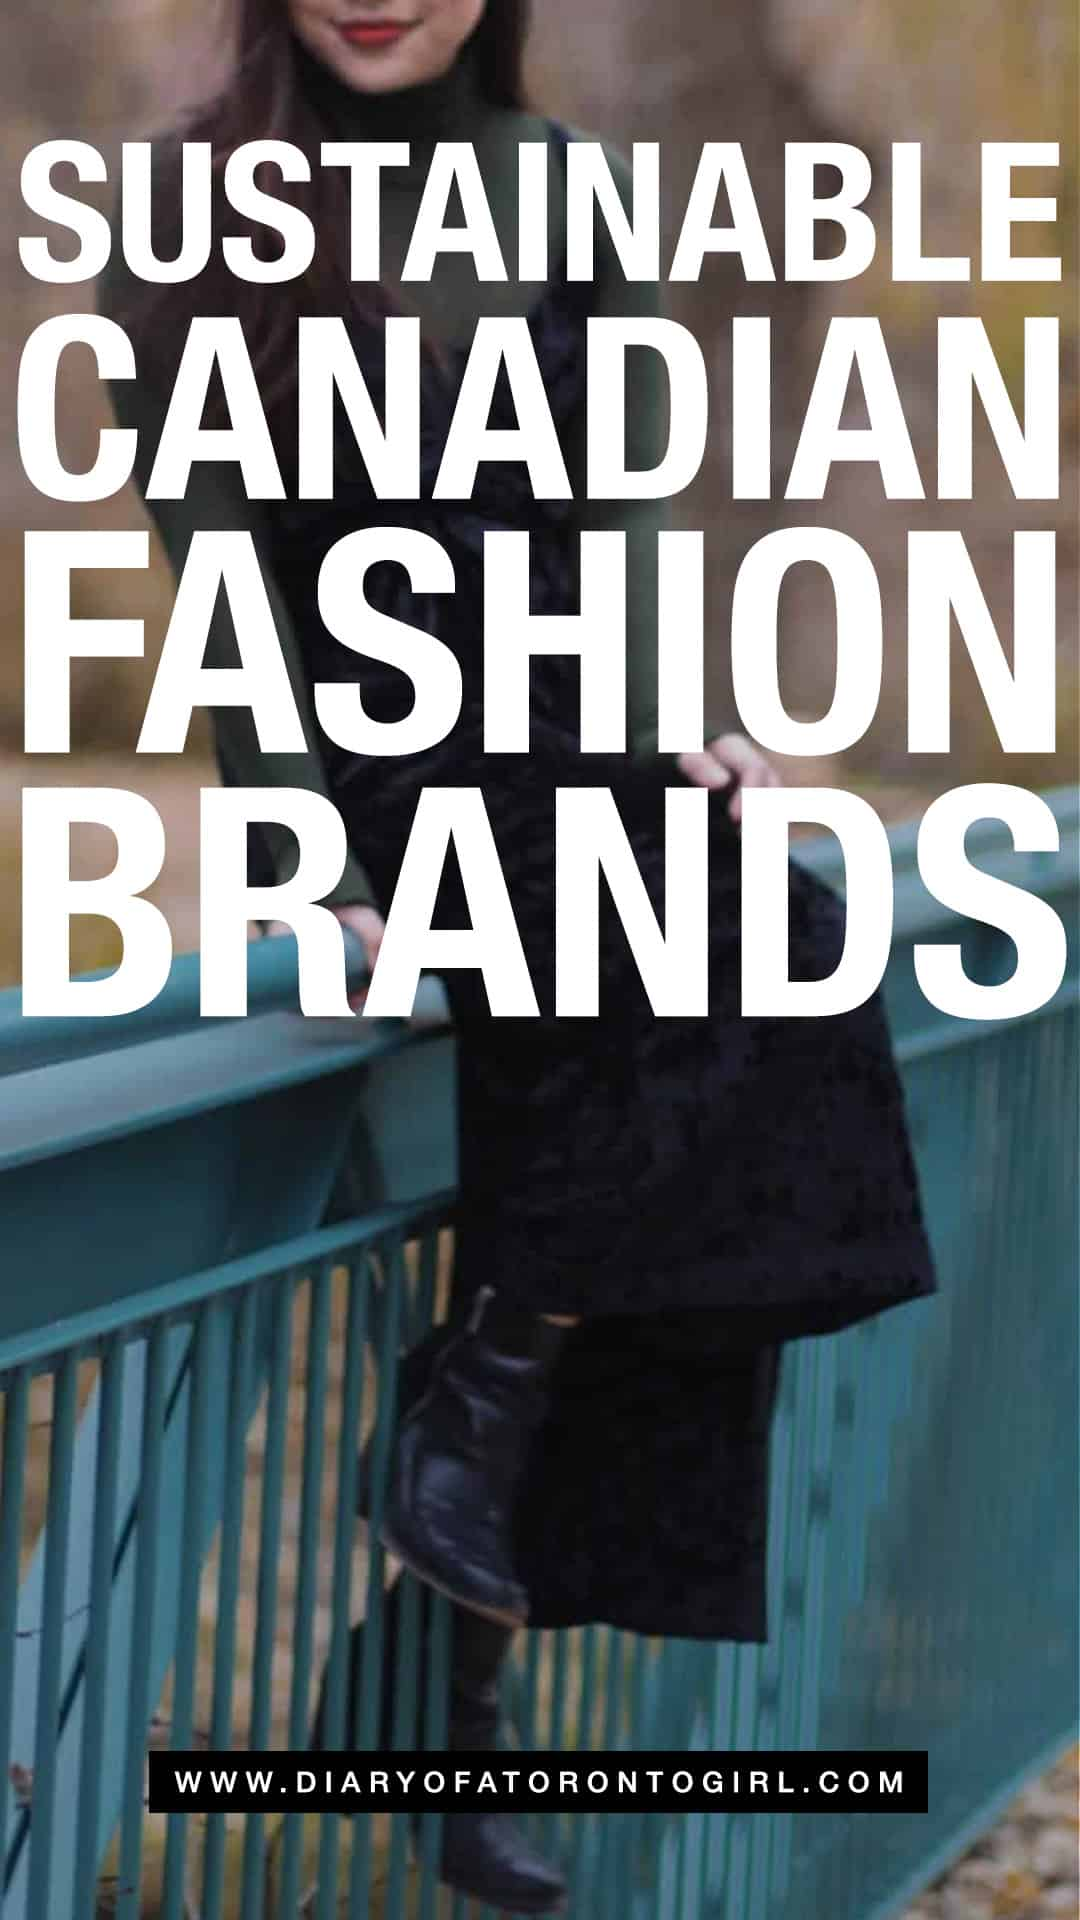 Sustainable Canadian clothing and fashion brands to shop in Canada if you're looking to purchase ethical and eco-friendly!